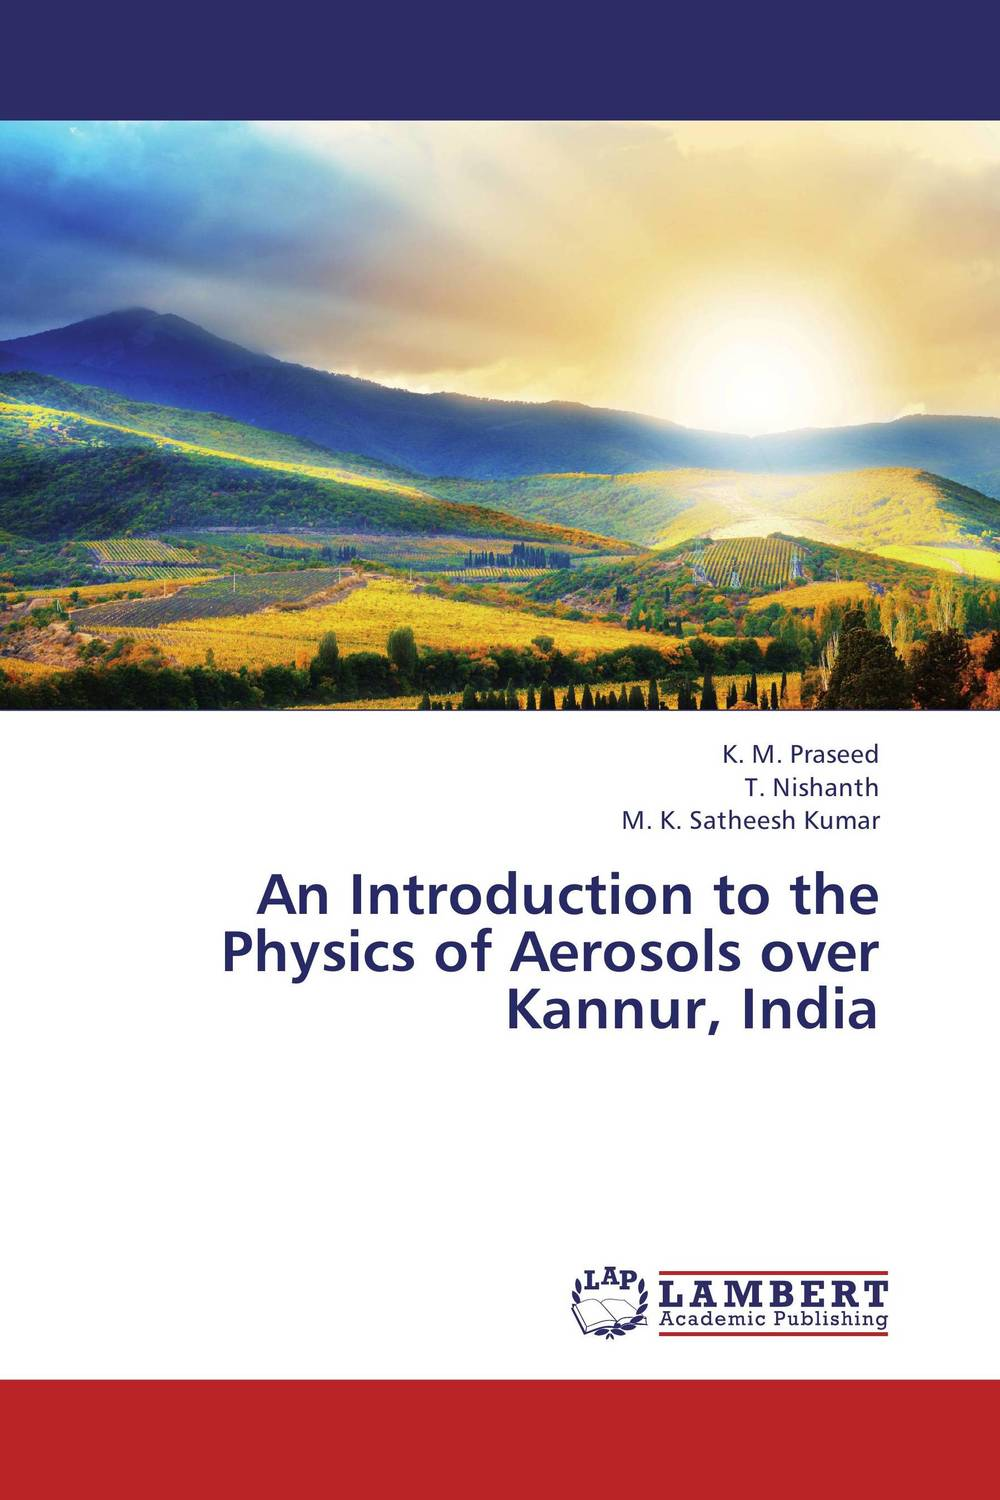 An Introduction to the Physics of Aerosols over Kannur, India fundamentals of physics extended 9th edition international student version with wileyplus set